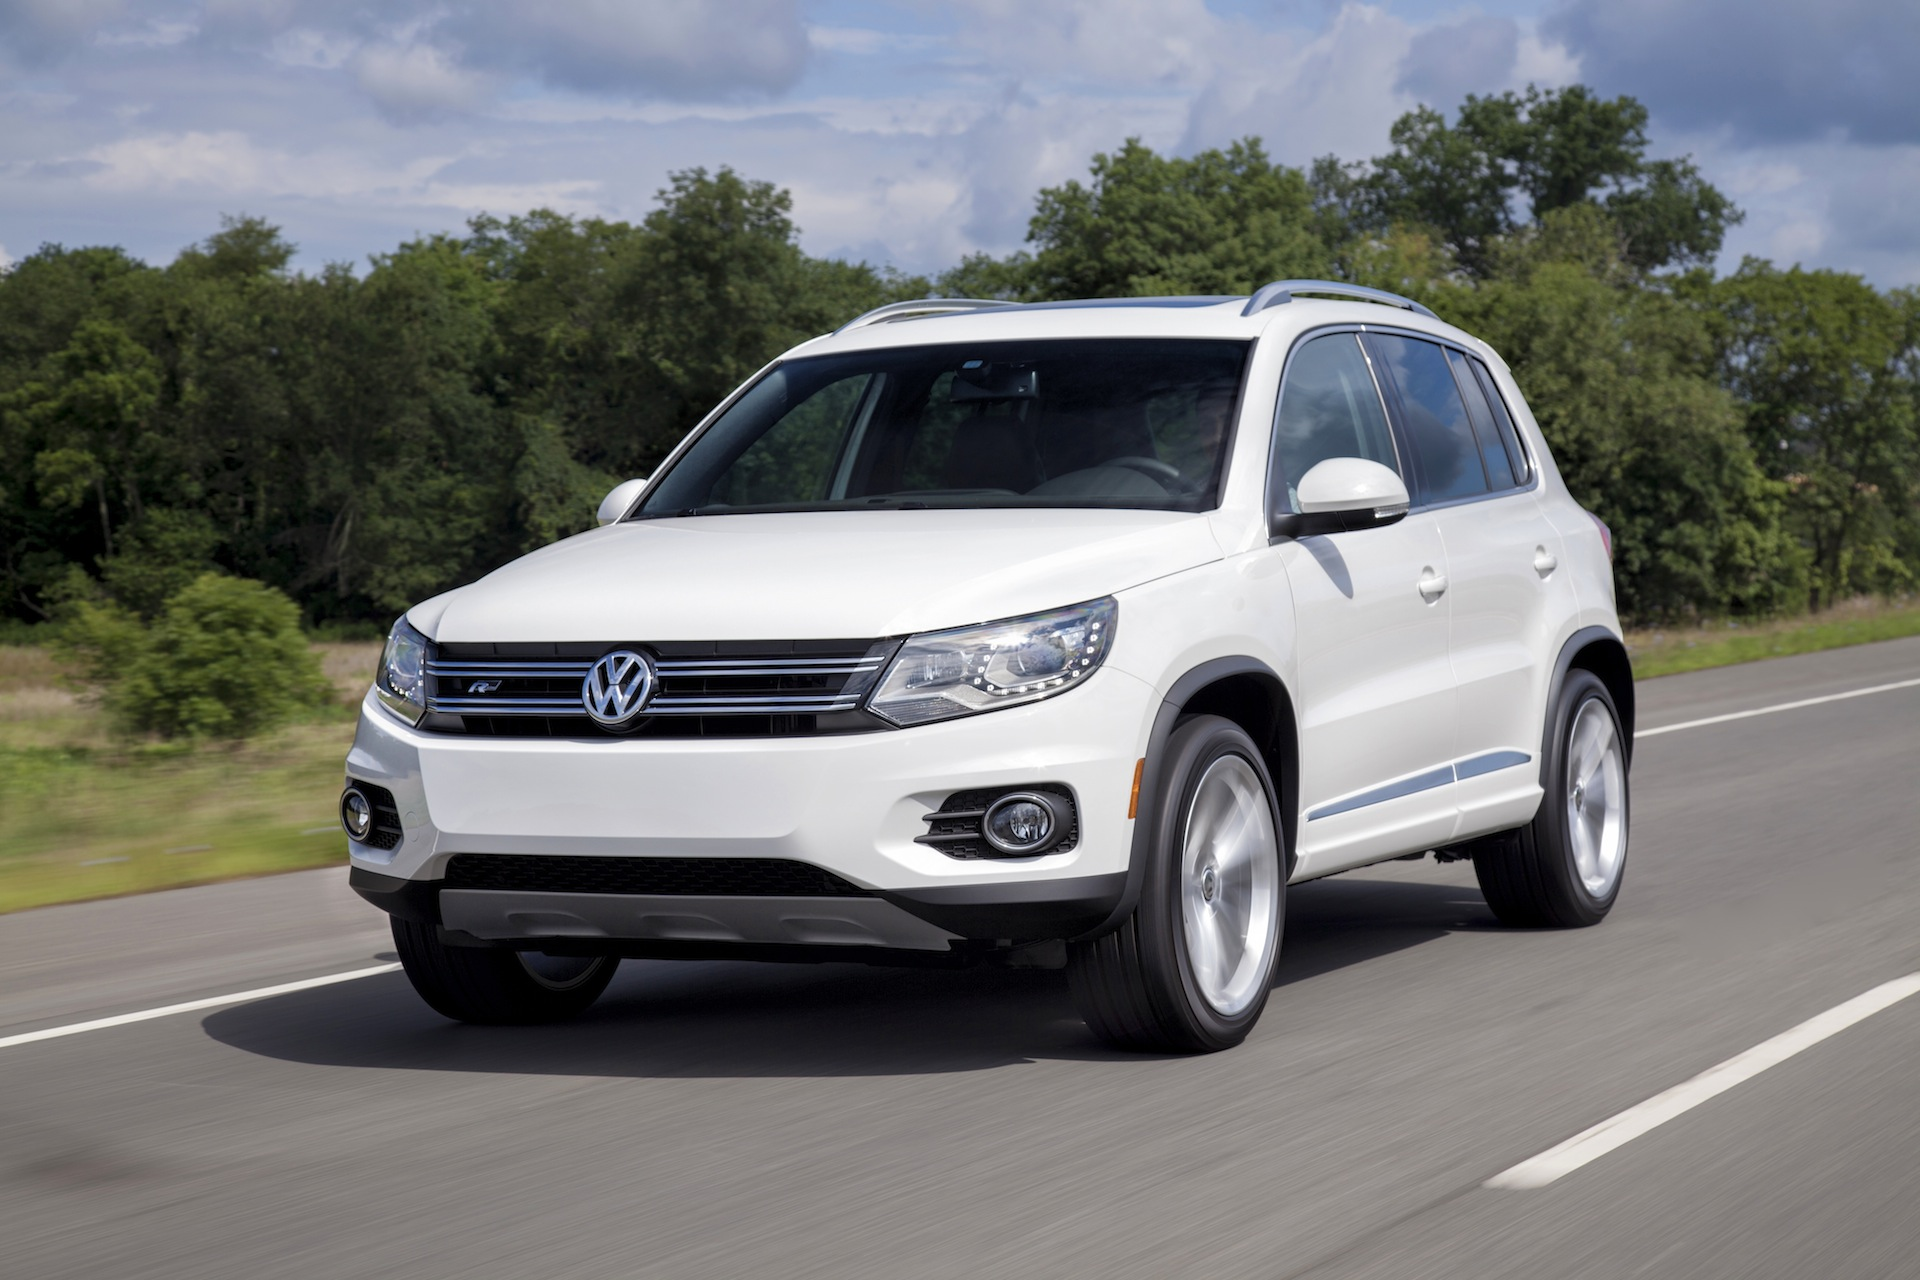 2014 Volkswagen Tiguan VW Review Ratings Specs Prices and Photos The Car Connection